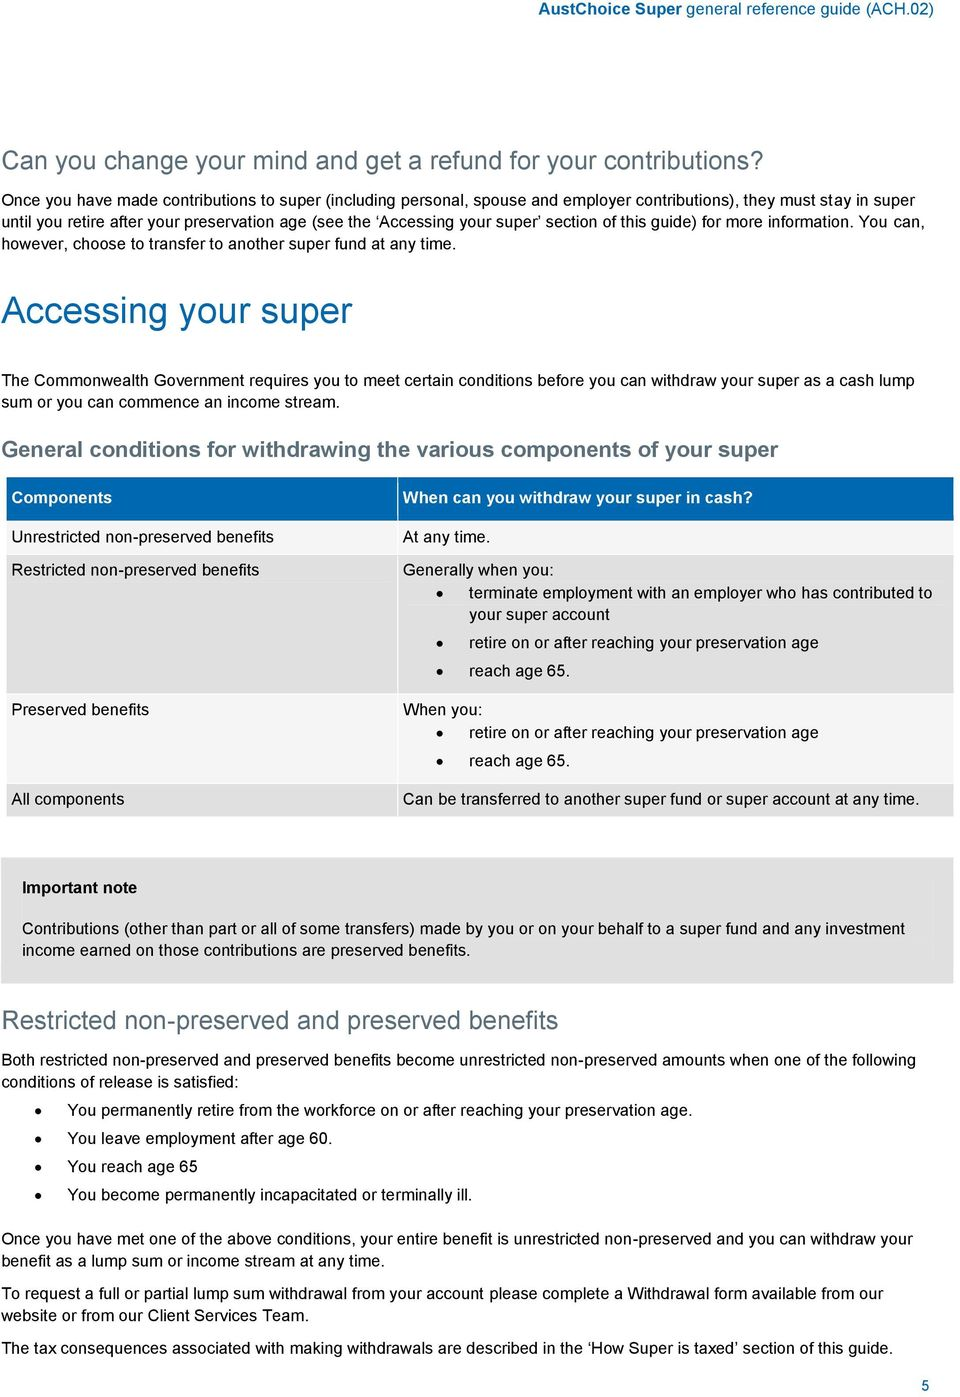 section of this guide) for more information. You can, however, choose to transfer to another super fund at any time.